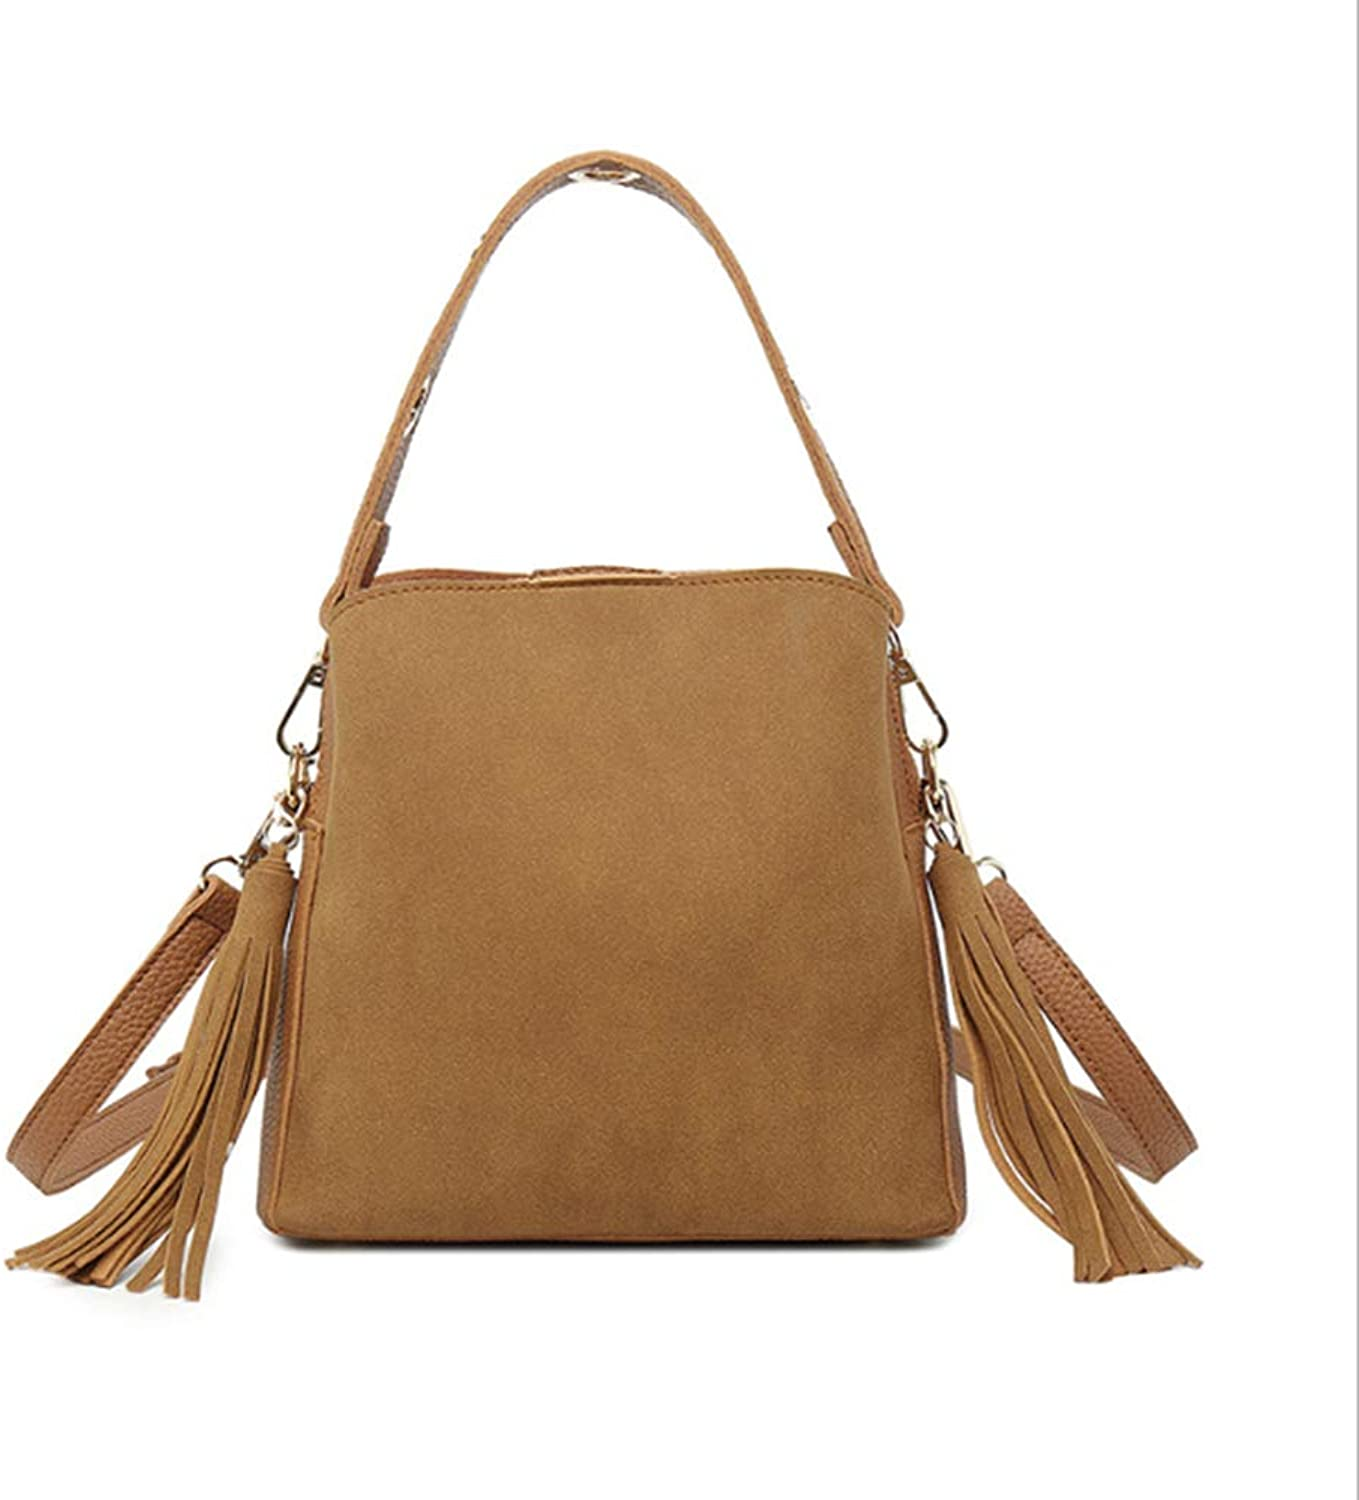 972821af9a59a Designer Women Handbags, PU Leather Adjustable Strap Shoulder Bag Tassel  Fashion Trend Capacity Work Polyester,Brown Large Hobo nribmf2563-Sporting  goods